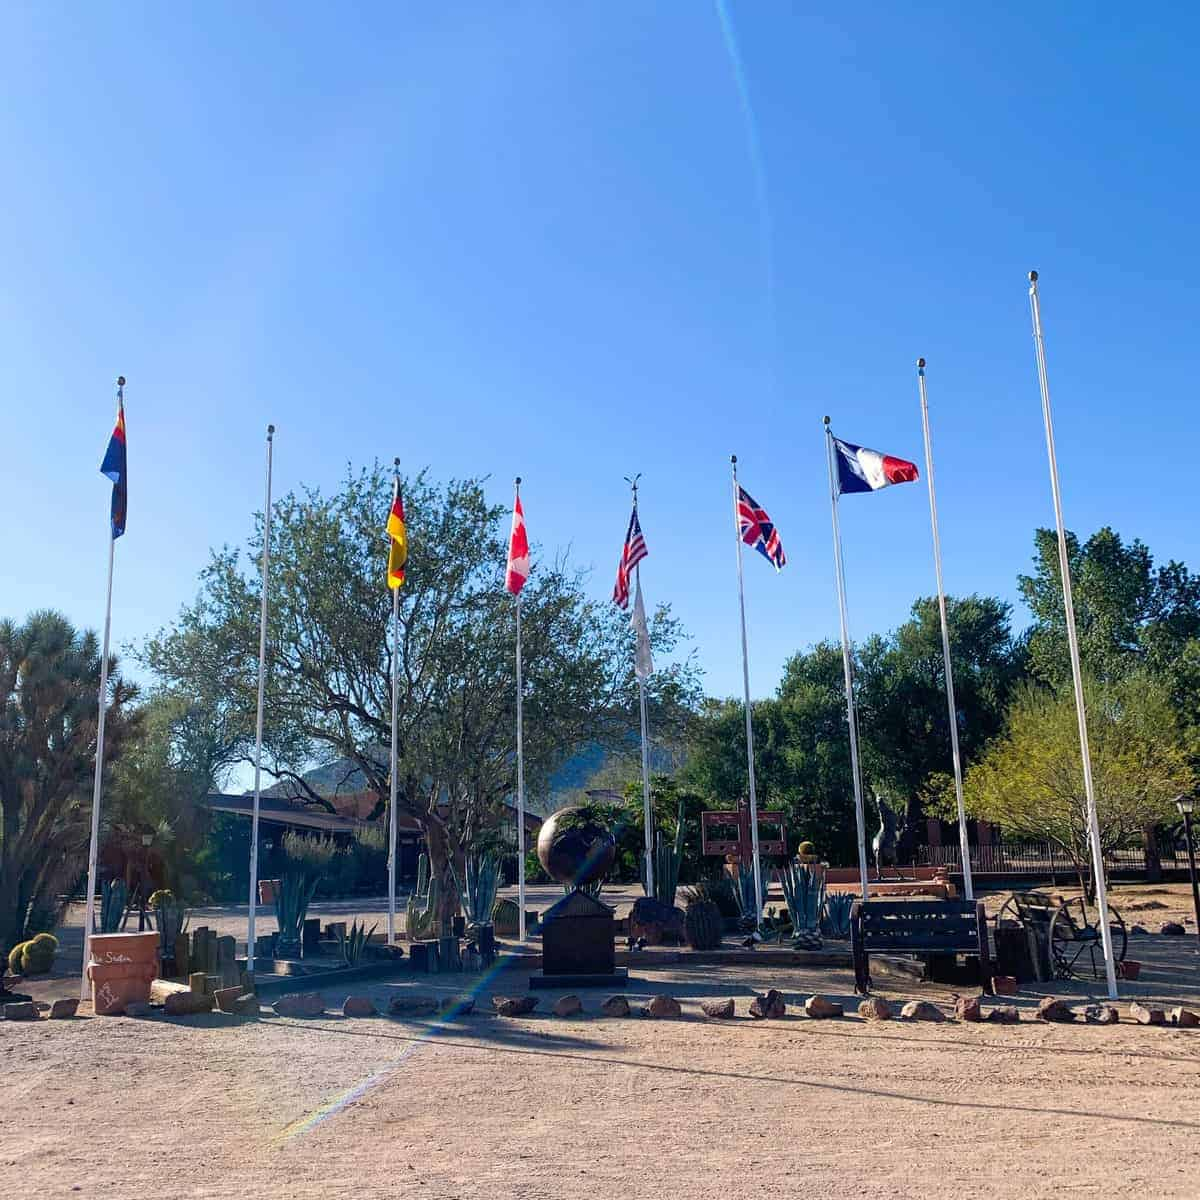 White Stallion Ranch, the Best All-Inclusive Resort in Arizona showing flags from different countries on the property of the dude ranch.